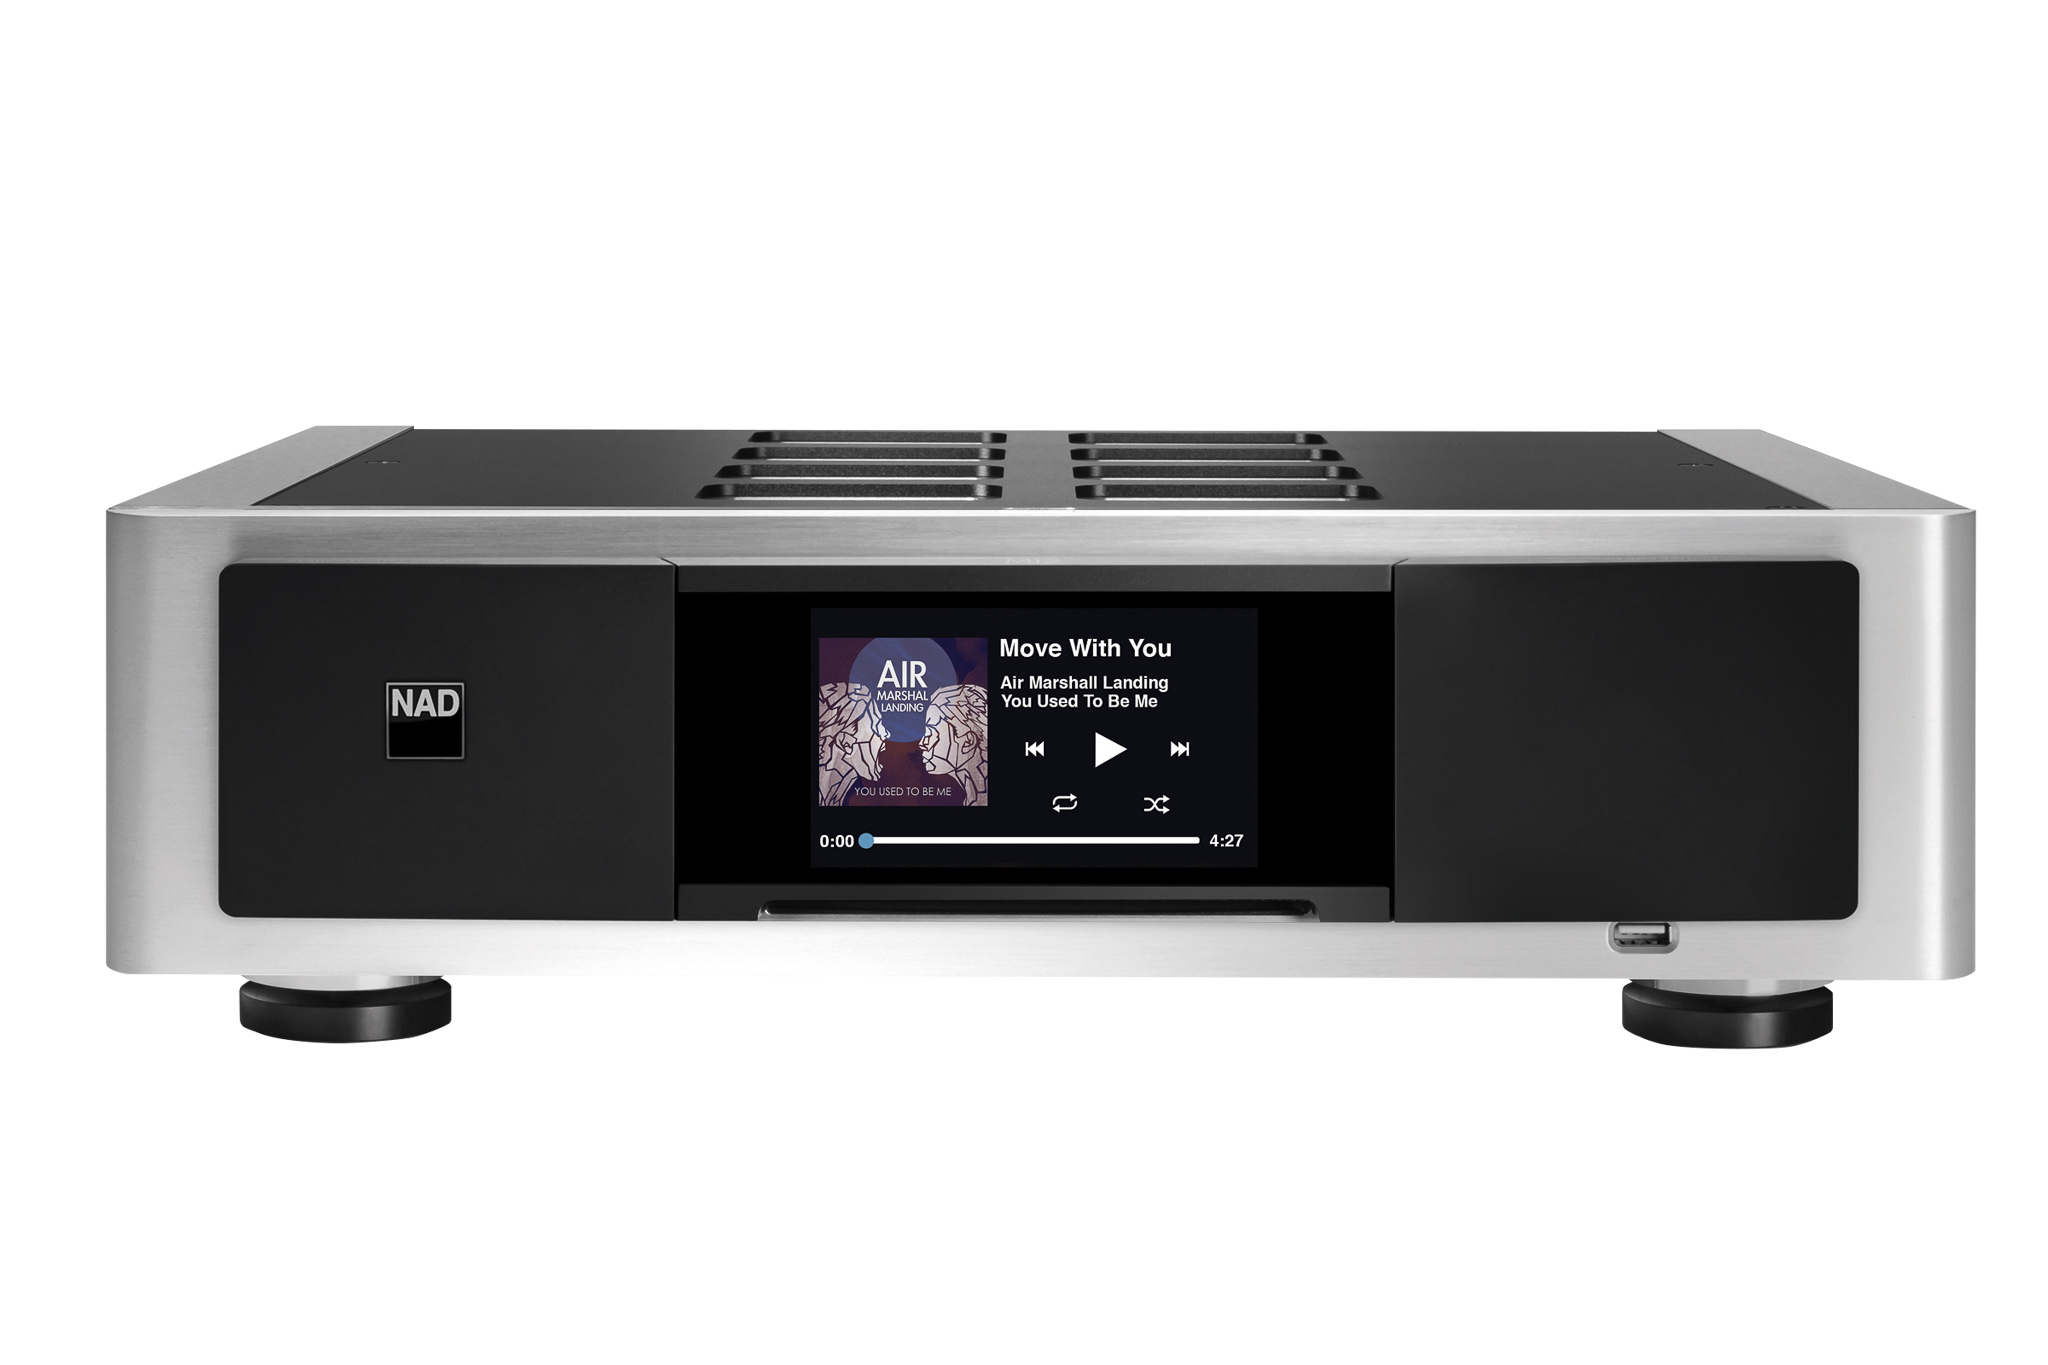 NAD Masters M50.2 Digital Music Player